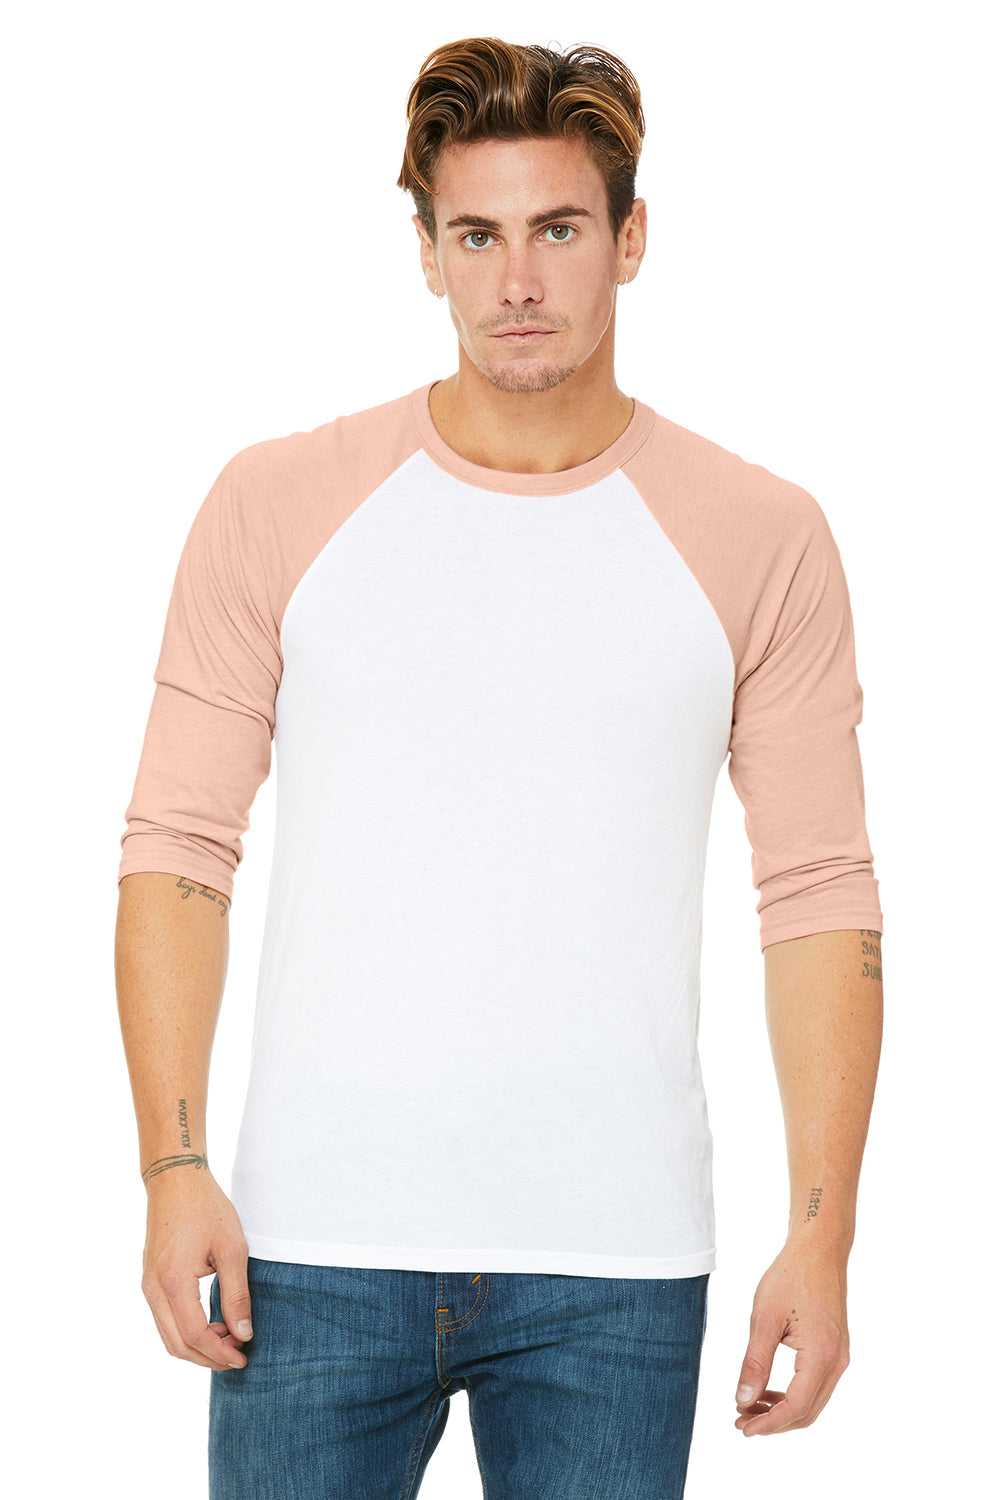 Bella + Canvas 3200 Mens 3/4 Sleeve Crewneck T-Shirt White/Heather Peach Front